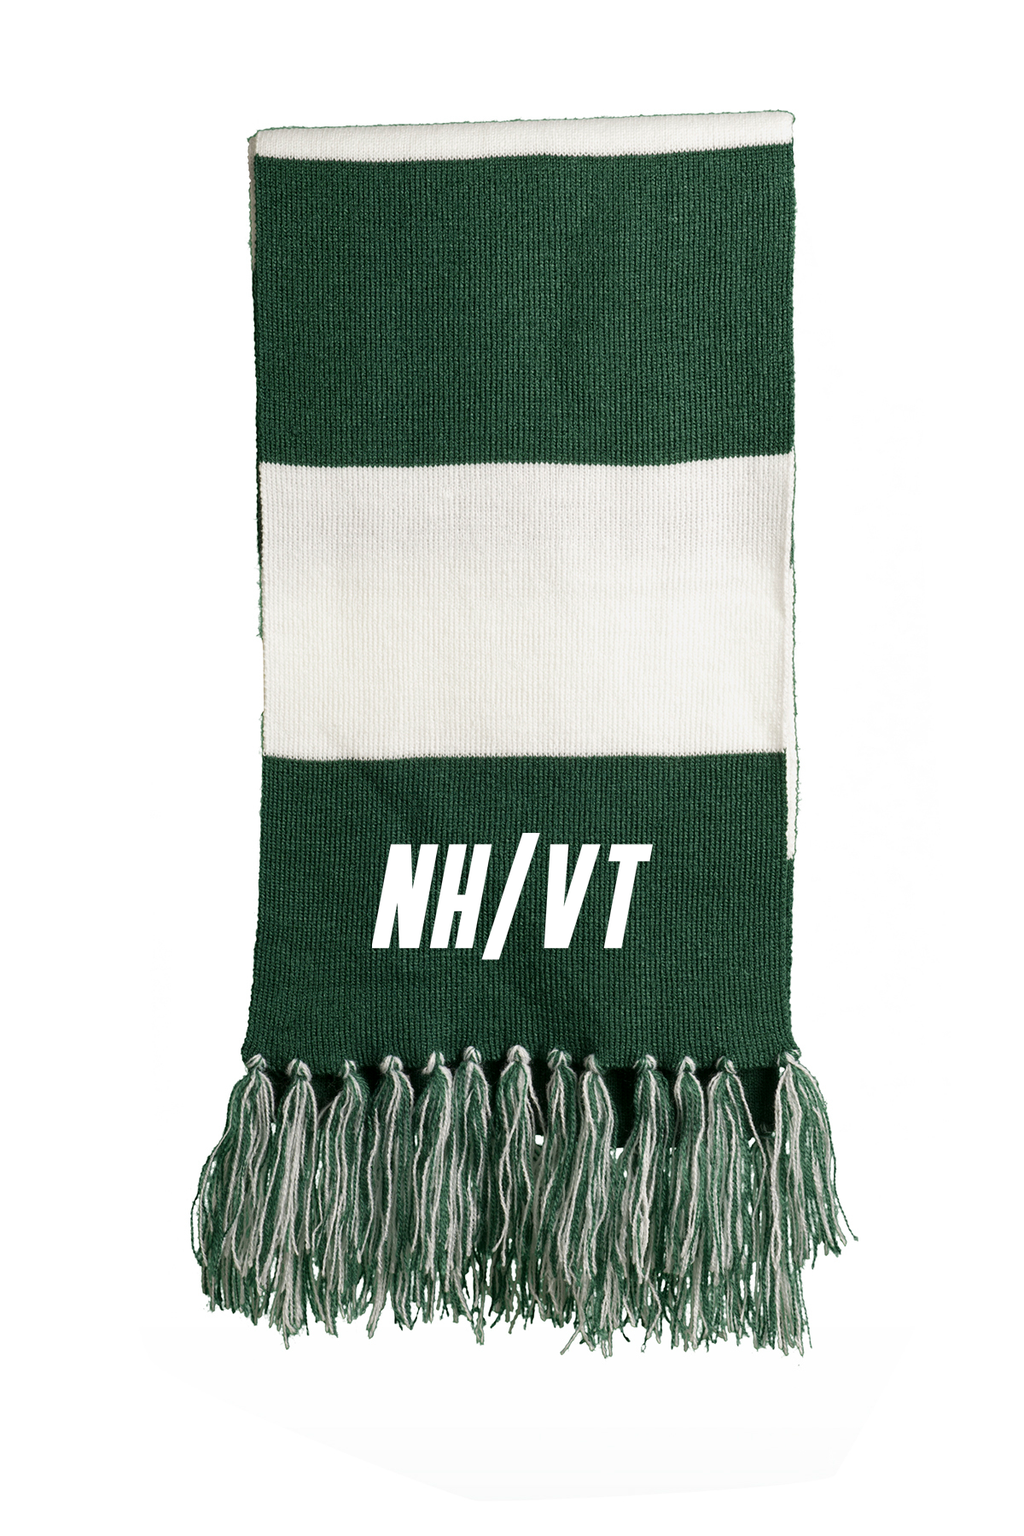 NH/VT Lacrosse Team Scarf